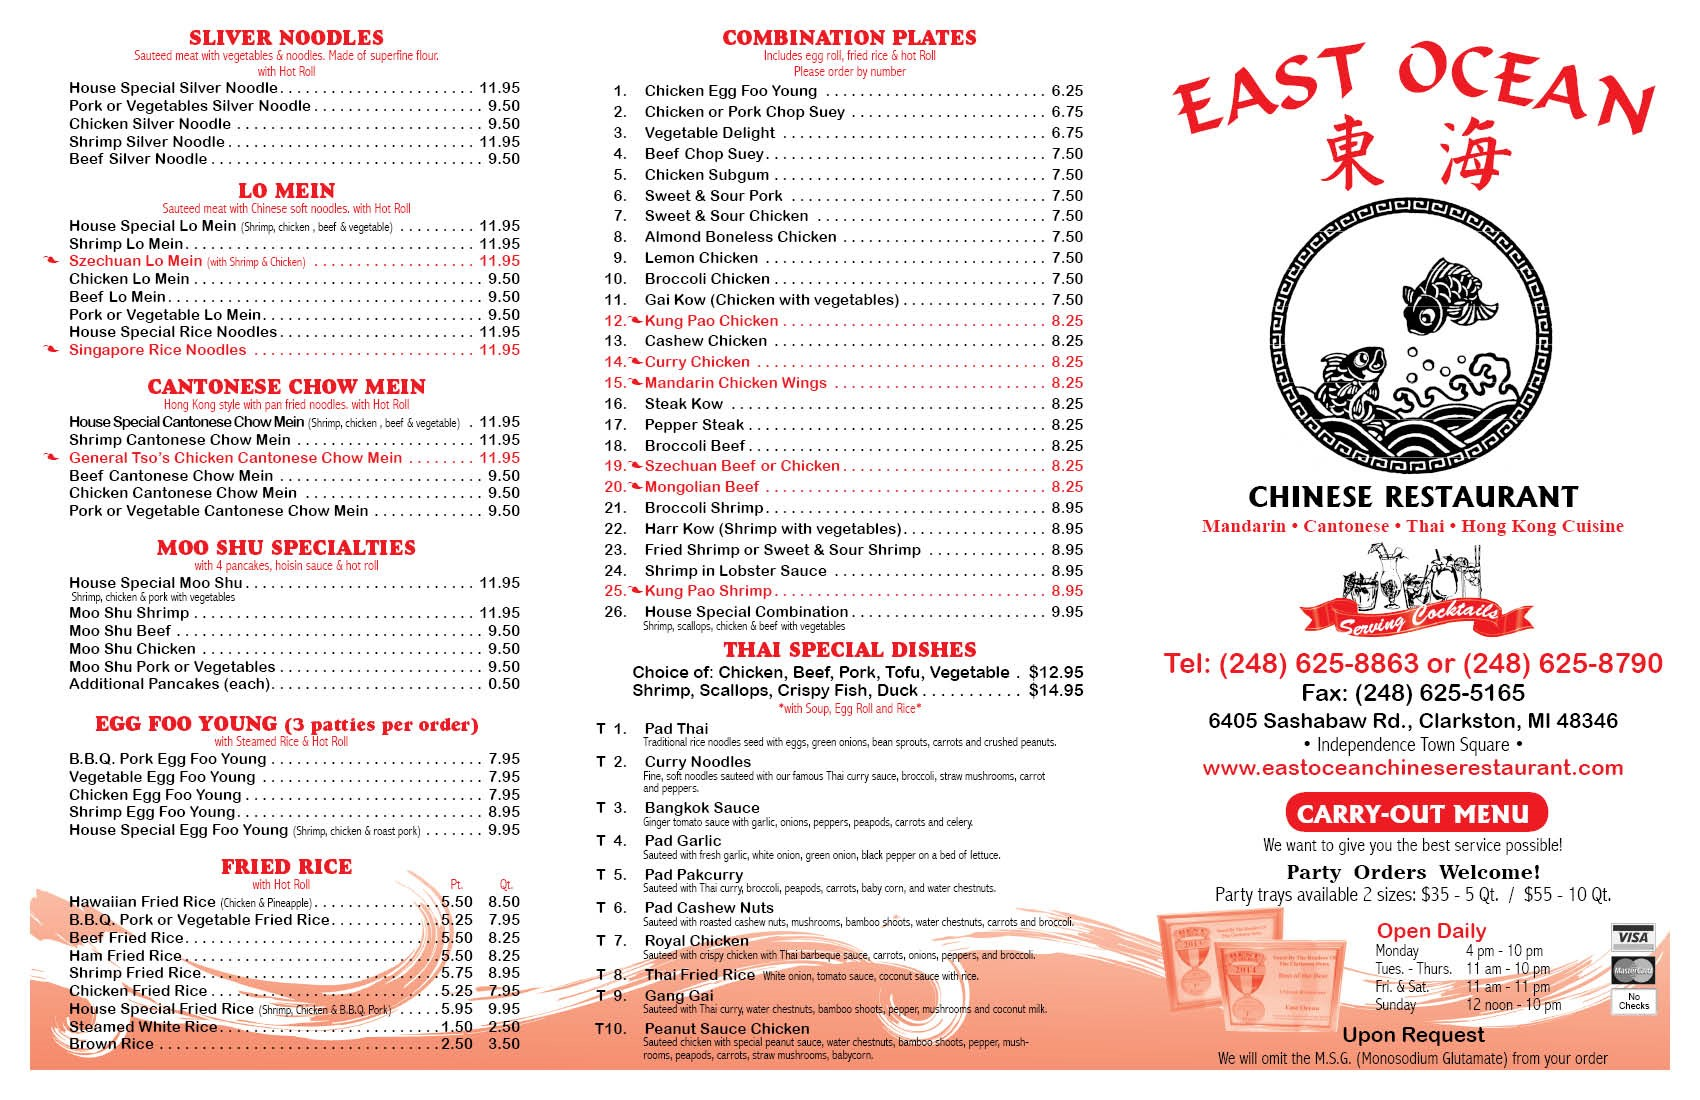 Asian Cuisine Weston | Take-Out Food | RiceUp Asian Kitchen